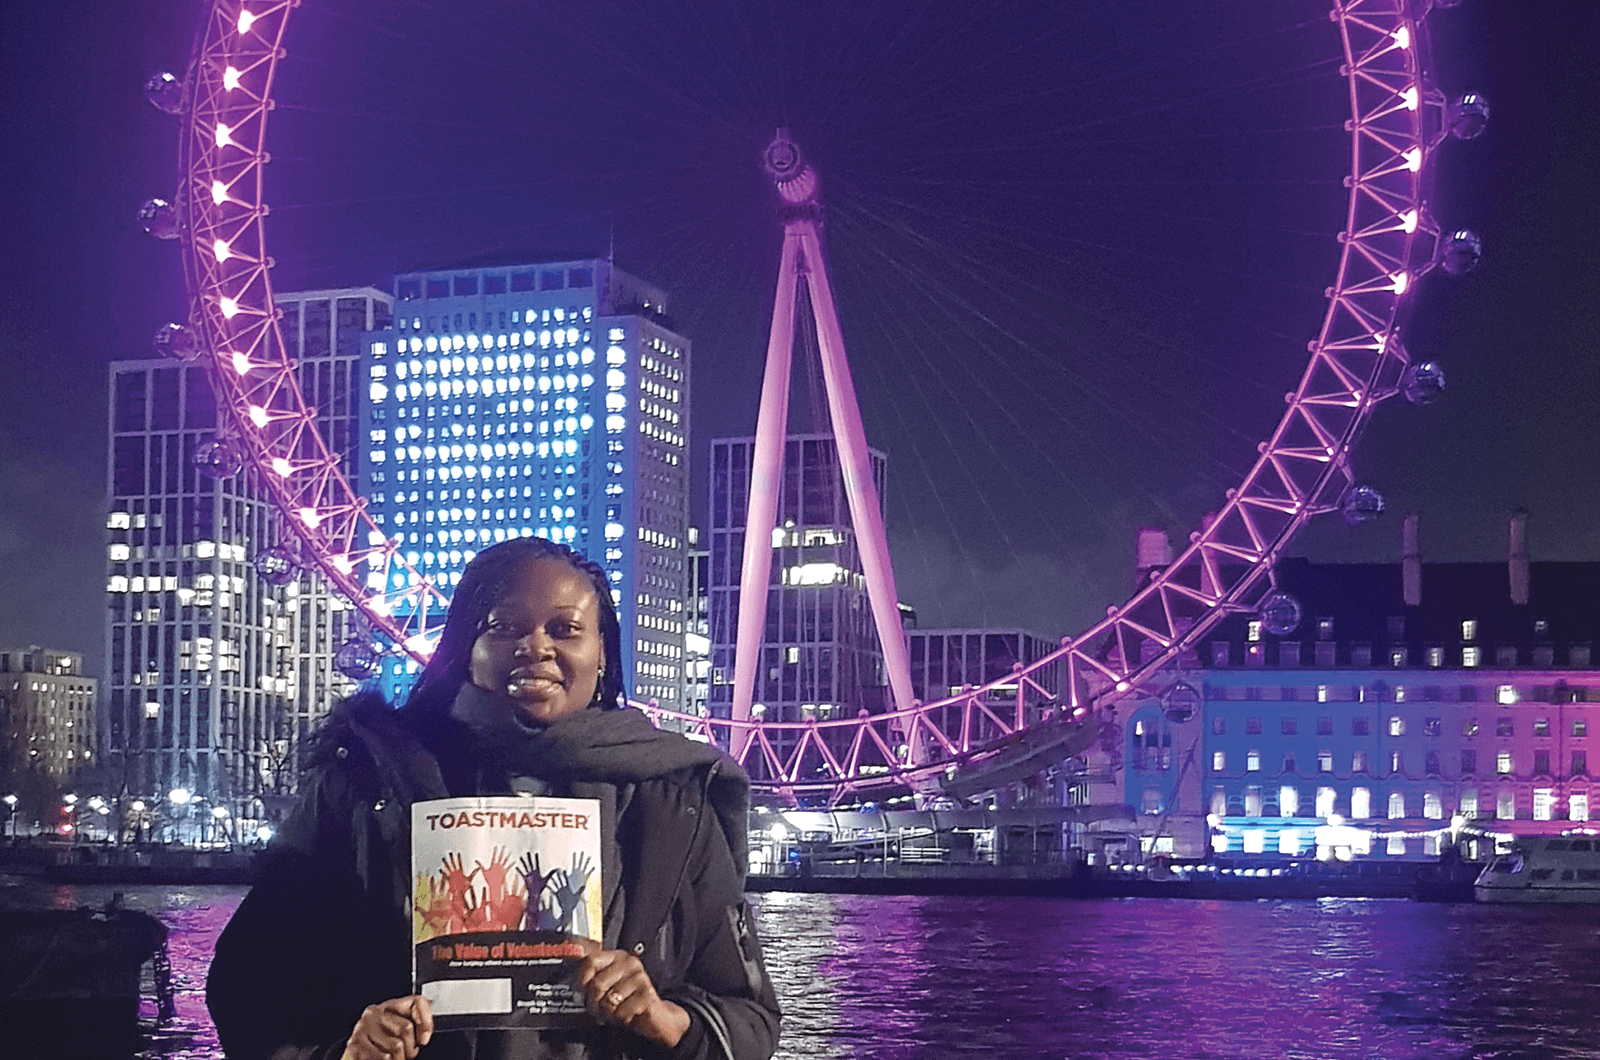 Patricia Dzifa Mensah-Larkai, DTM, of London, England, poses in front of the London Eye, Europe's tallest cantilevered observation wheel, to celebrate her 10th Toastmasters anniversary.